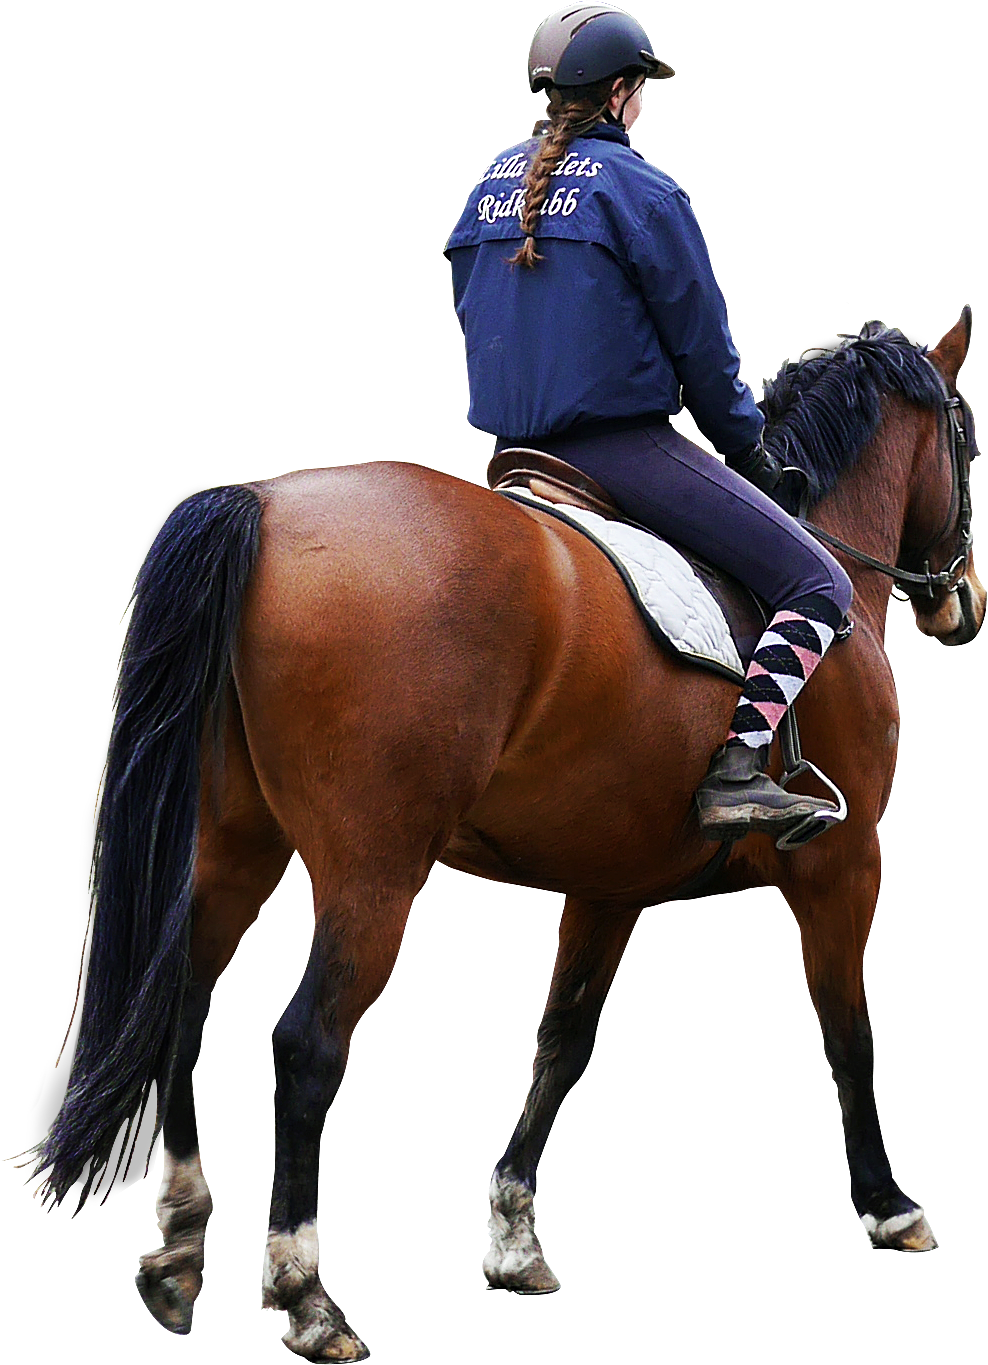 PNG Horse Riding - 69311